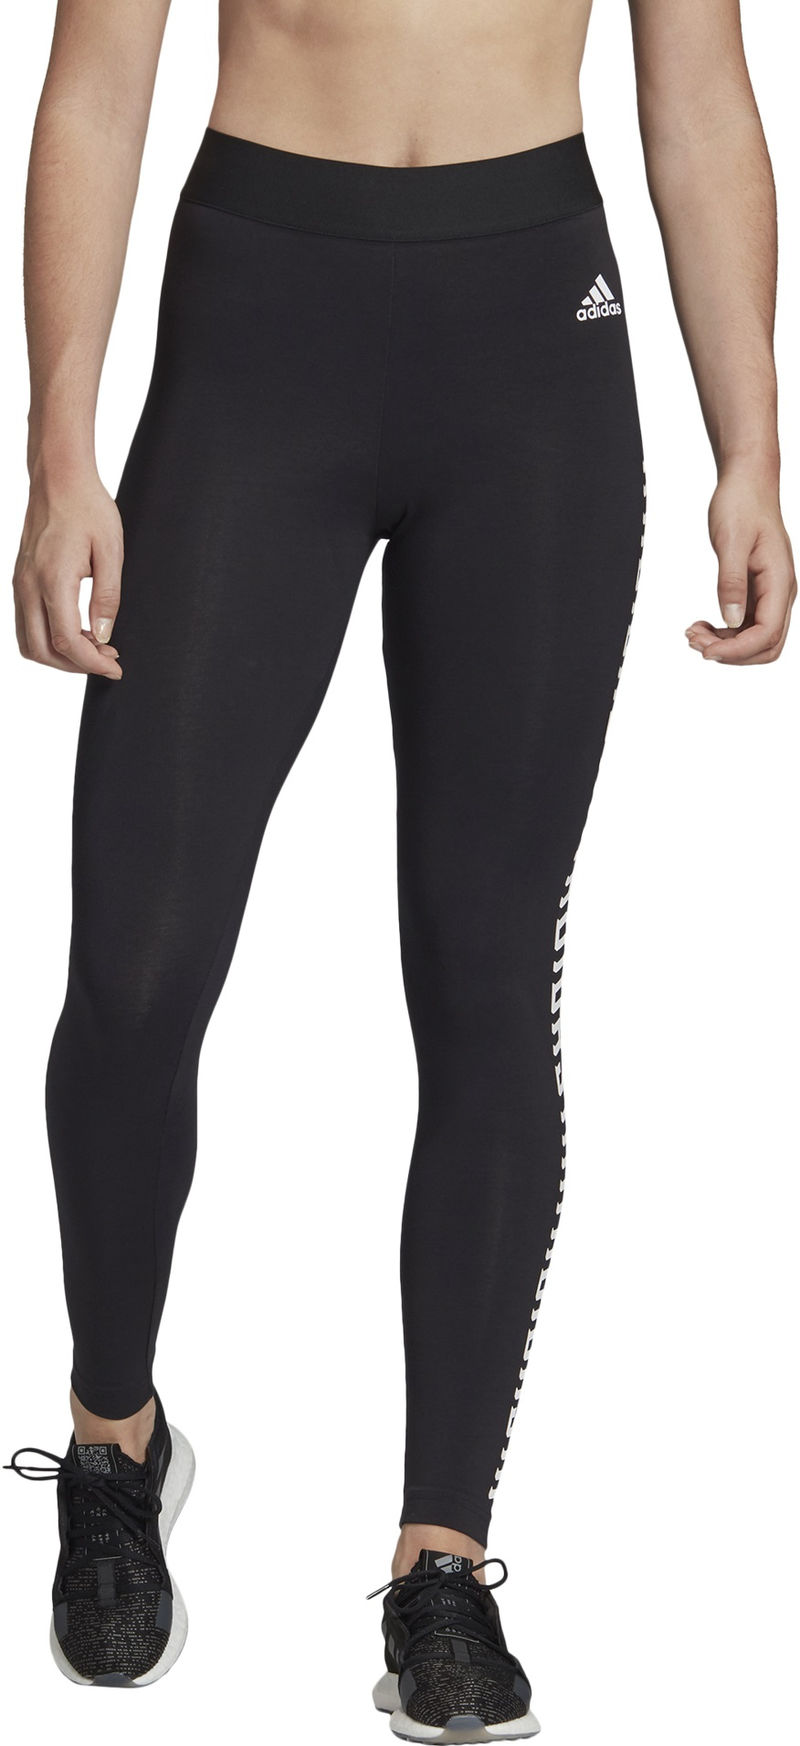 Adidas Tamprės W Mhe GR Tight Black